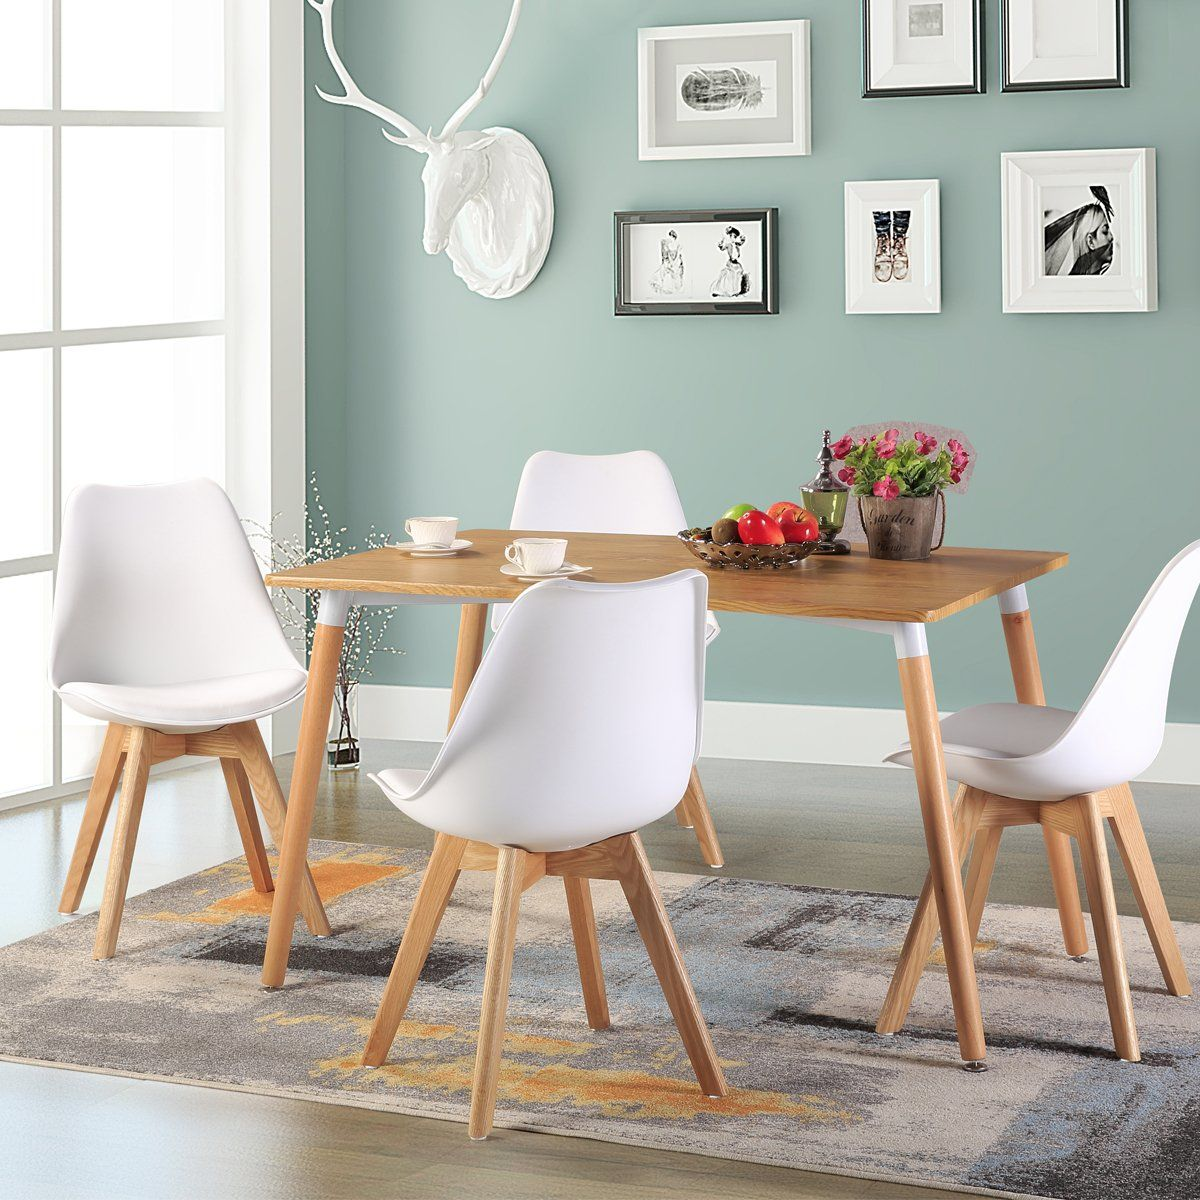 H.JWeDoo Set of 4 Dining Chairs Modern Kitchen Chair with Ecoleather ...